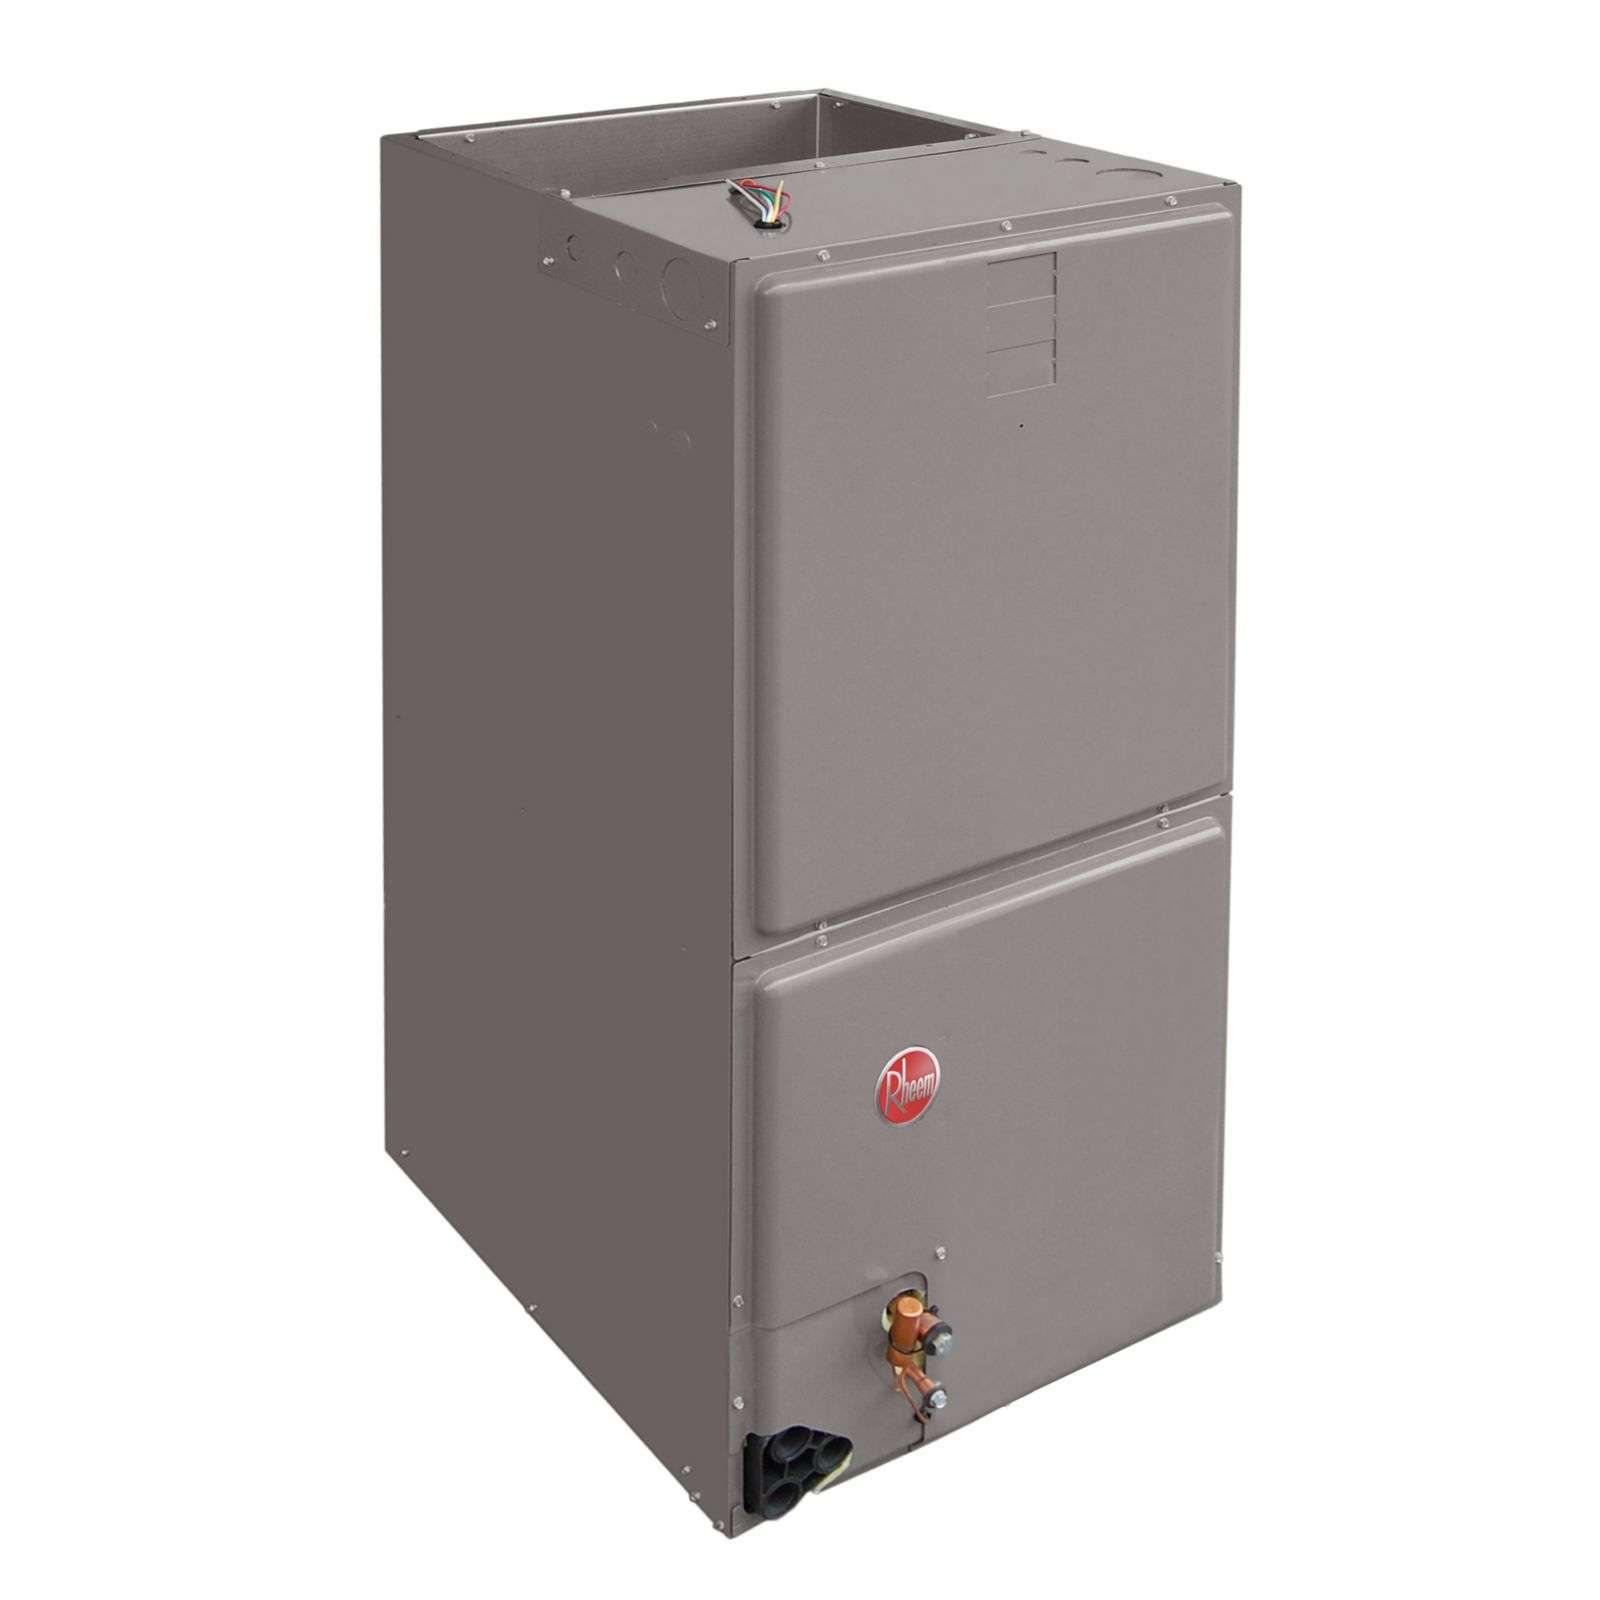 Rheem RH1V3617STANJA - RH1V - Series, 3 Ton, R-410A, Single Stage, Aluminum Air Handler, ECM Motor, 208/240V, 1 Ph, 60 Hz